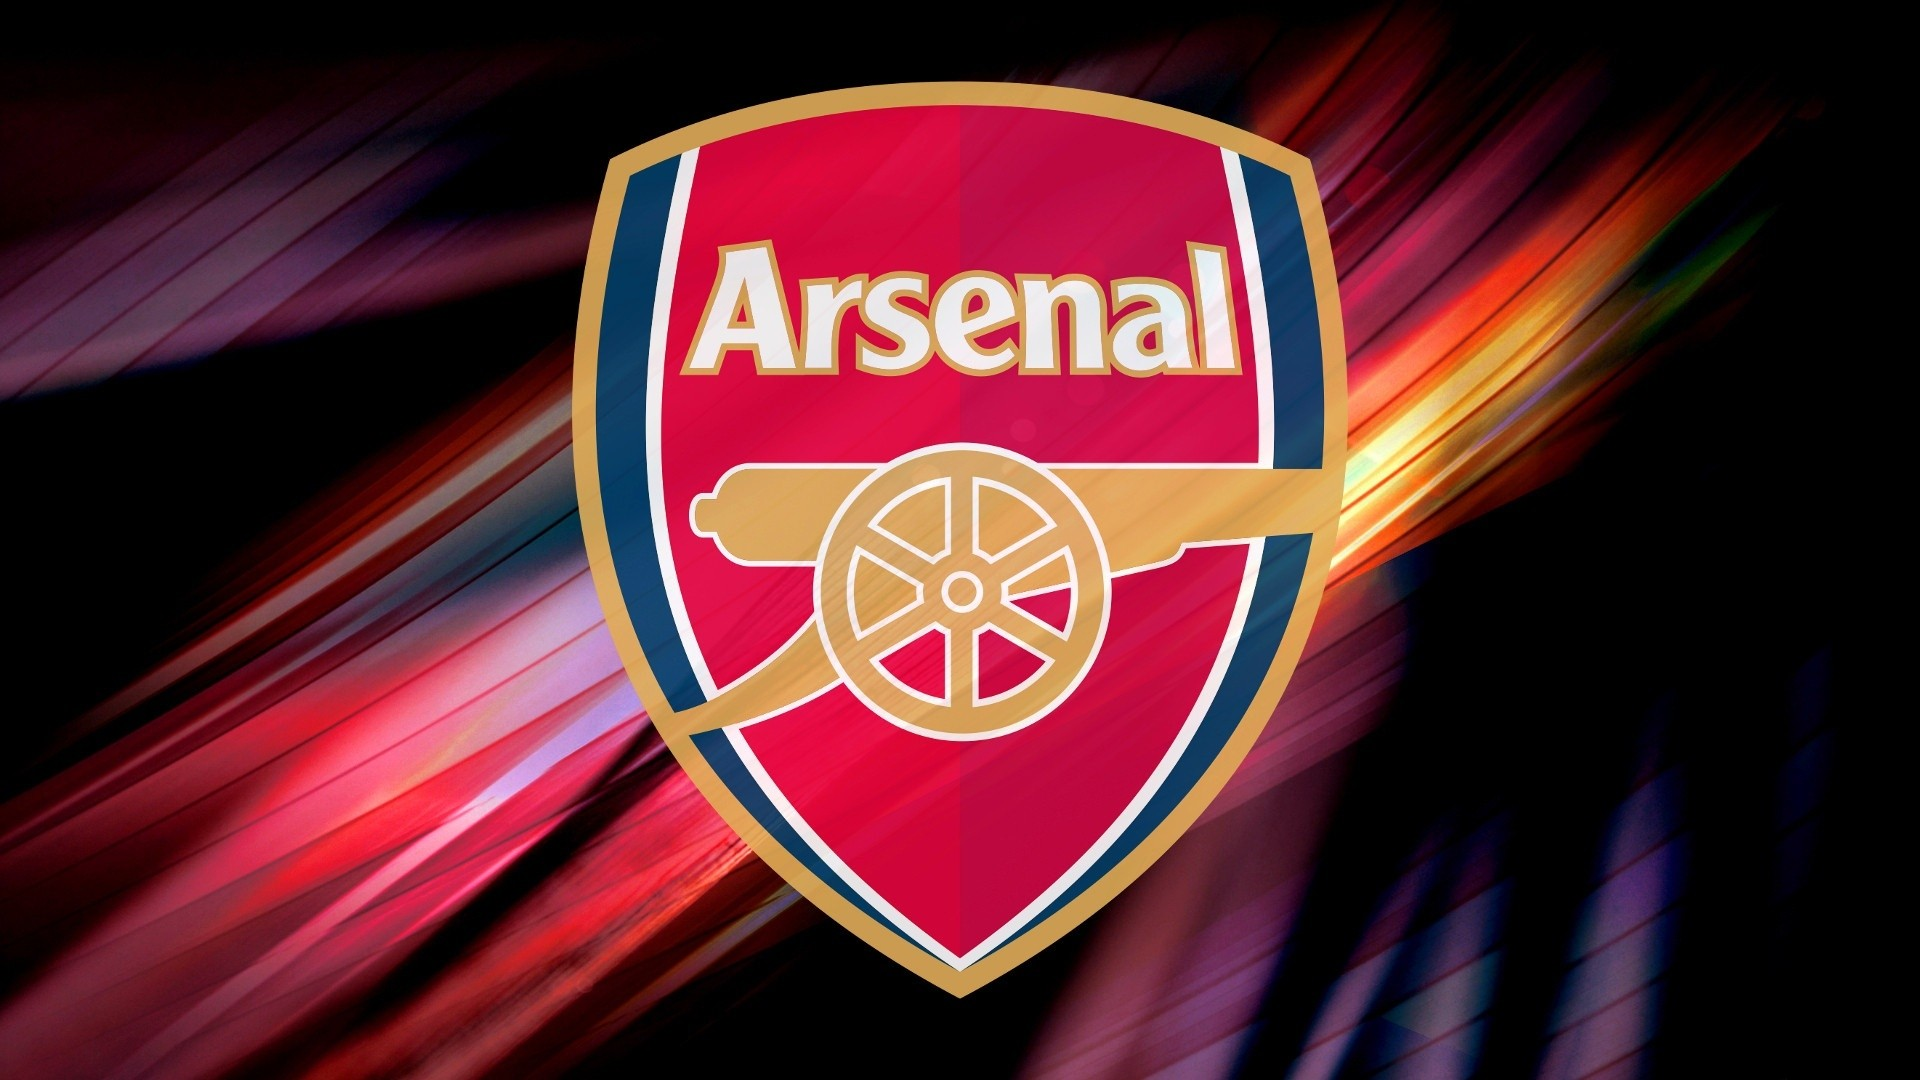 arsenal wallpapers 21 images